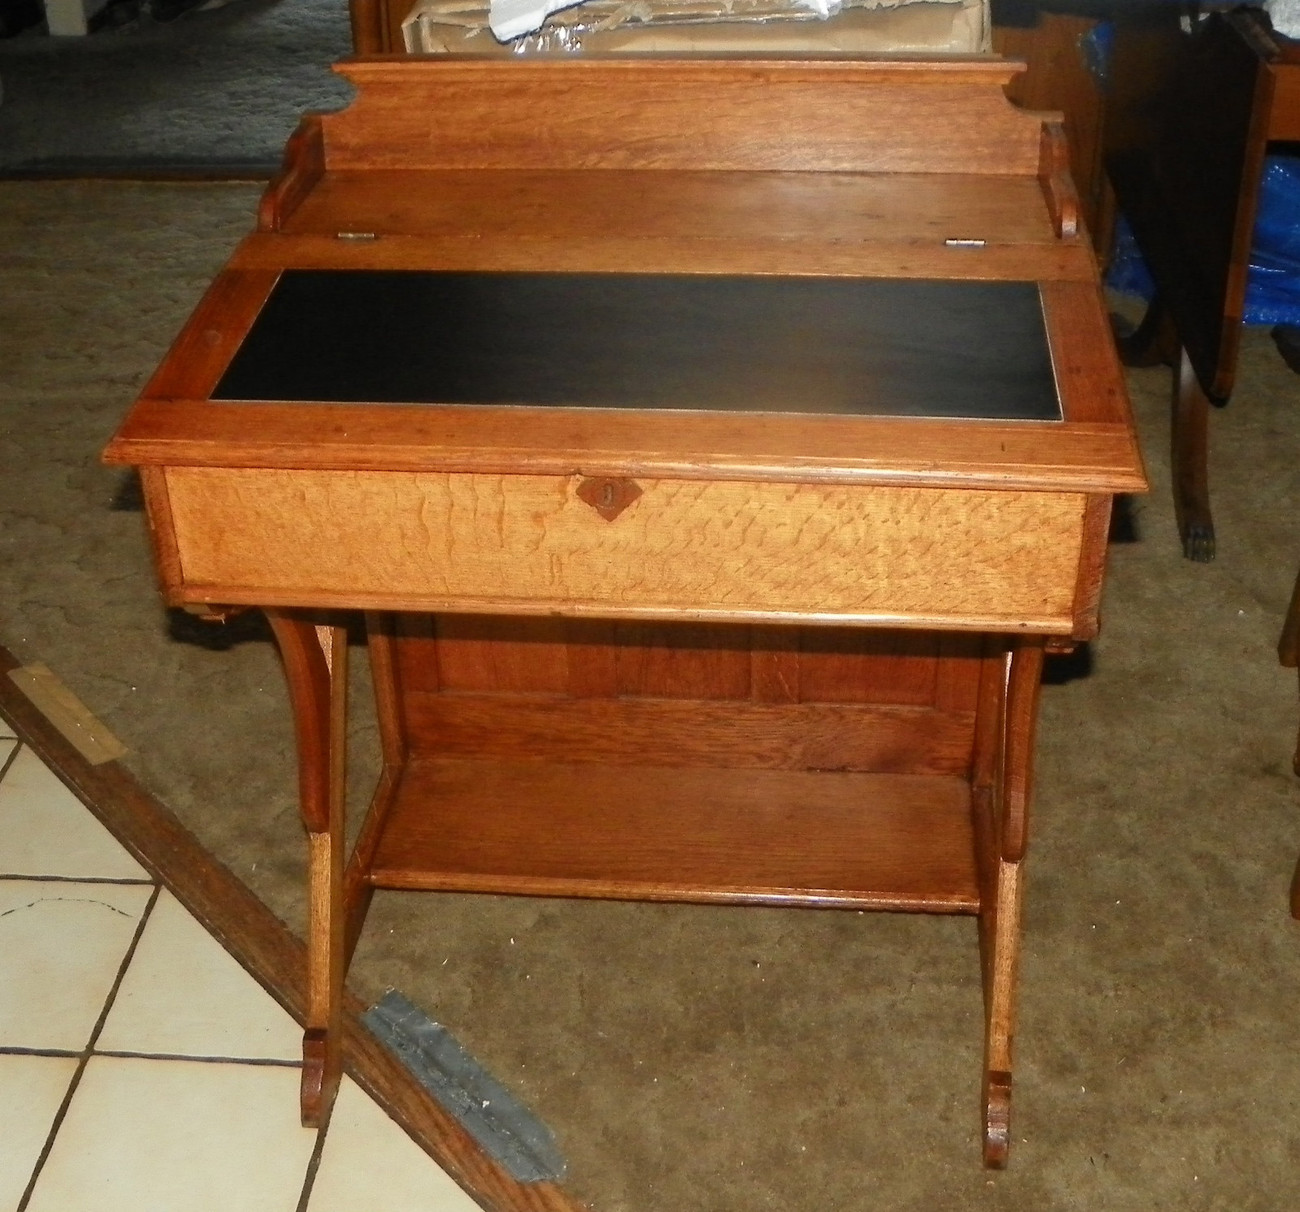 New Amp Used Oak Desk For Sale 297 Ads In Us Lowest Prices